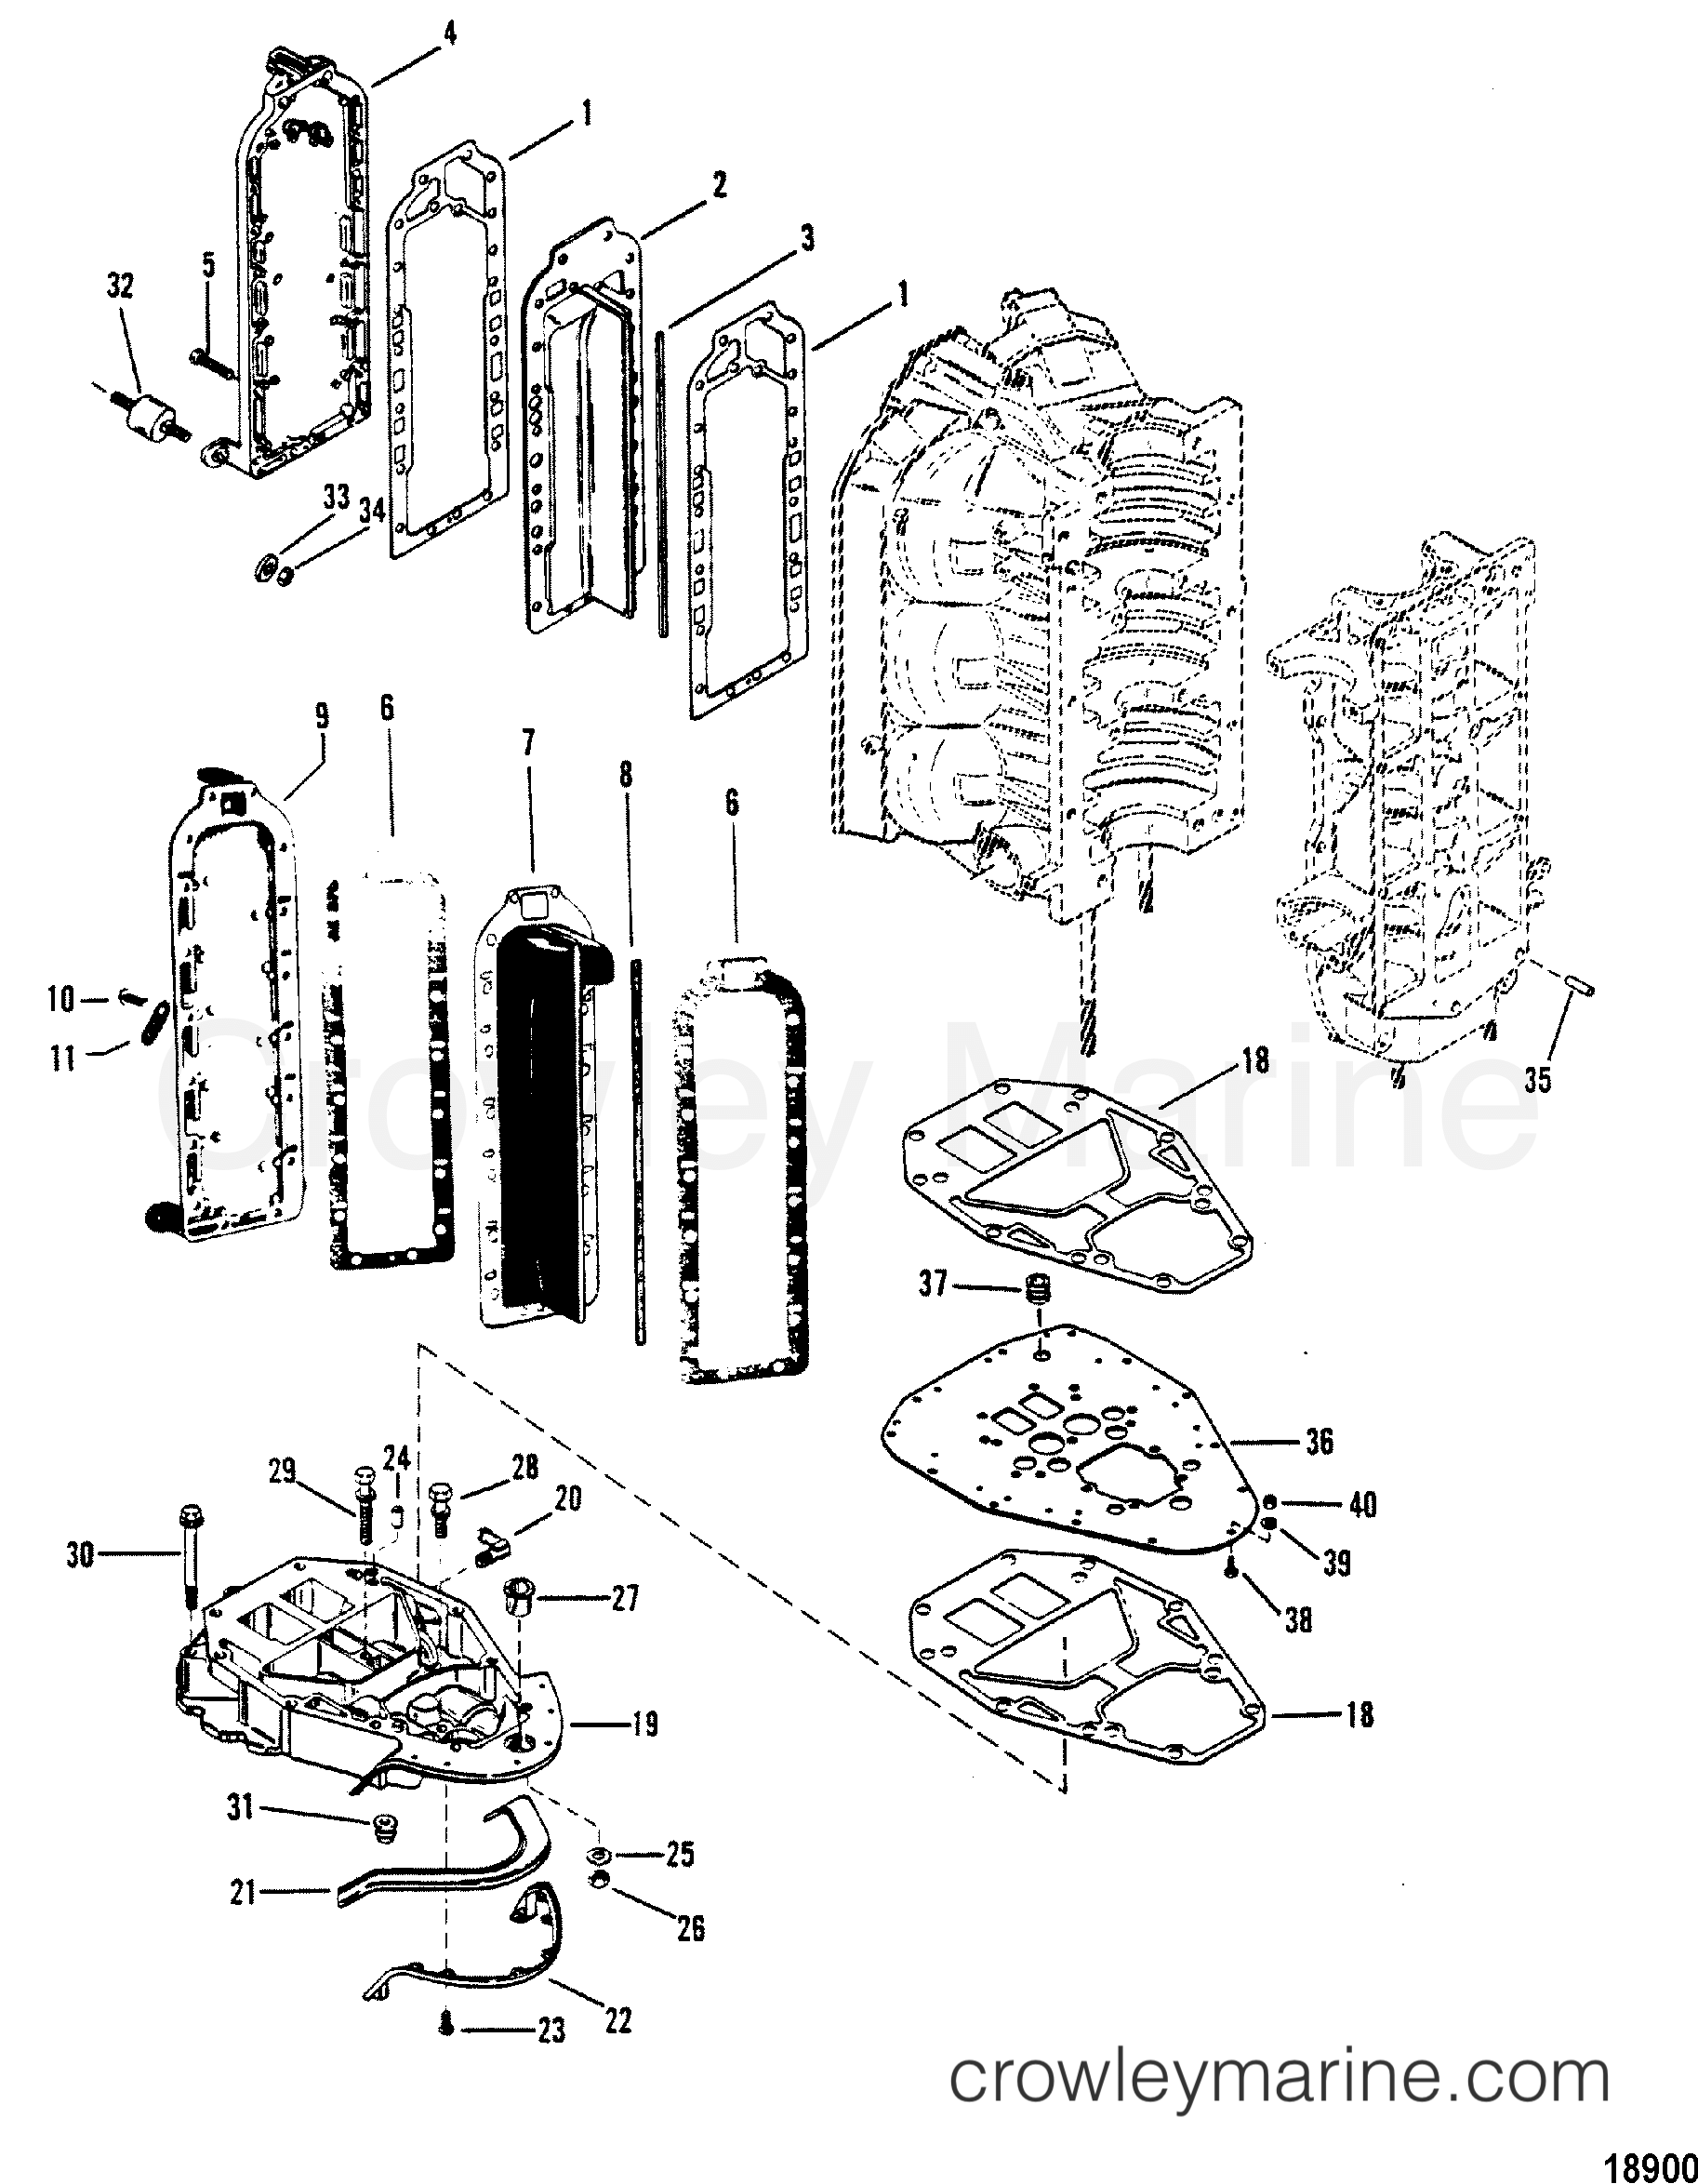 divider plate and exhaust plate